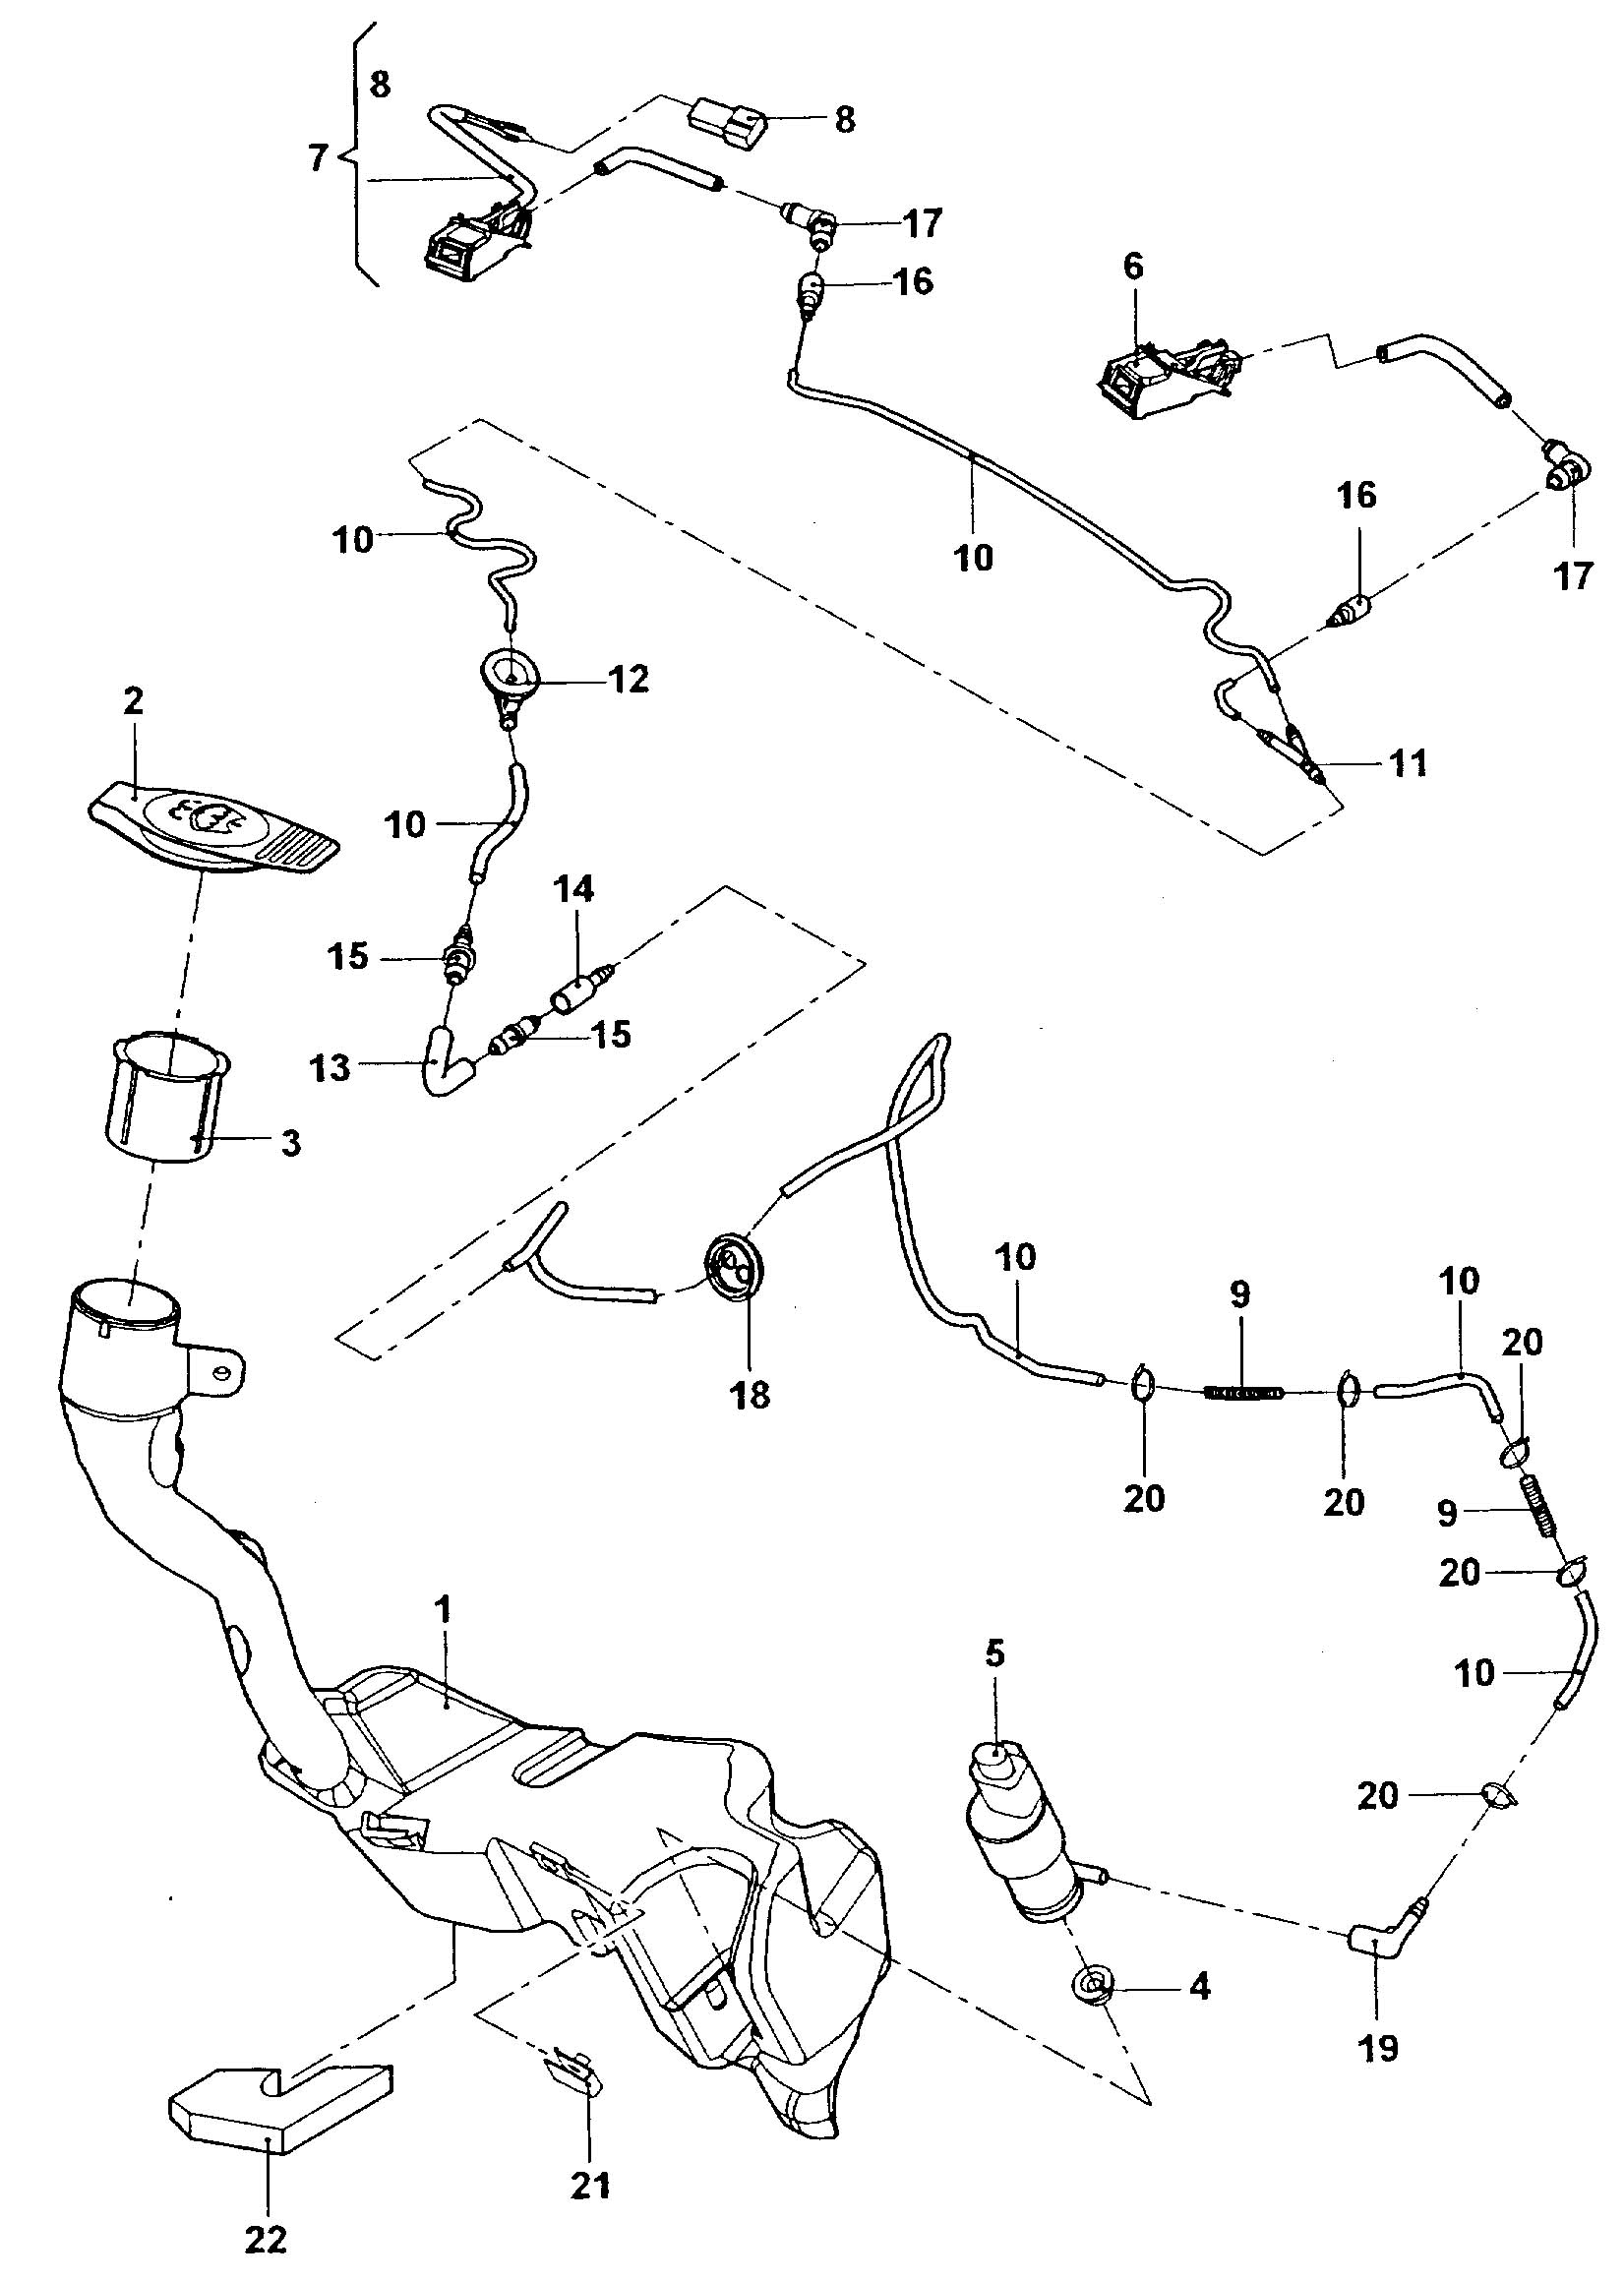 Mk3 Golf Suspension Diagram Wiring And Ebooks Vw Mk1 Front Transmission Parts Imageresizertool Com Gti